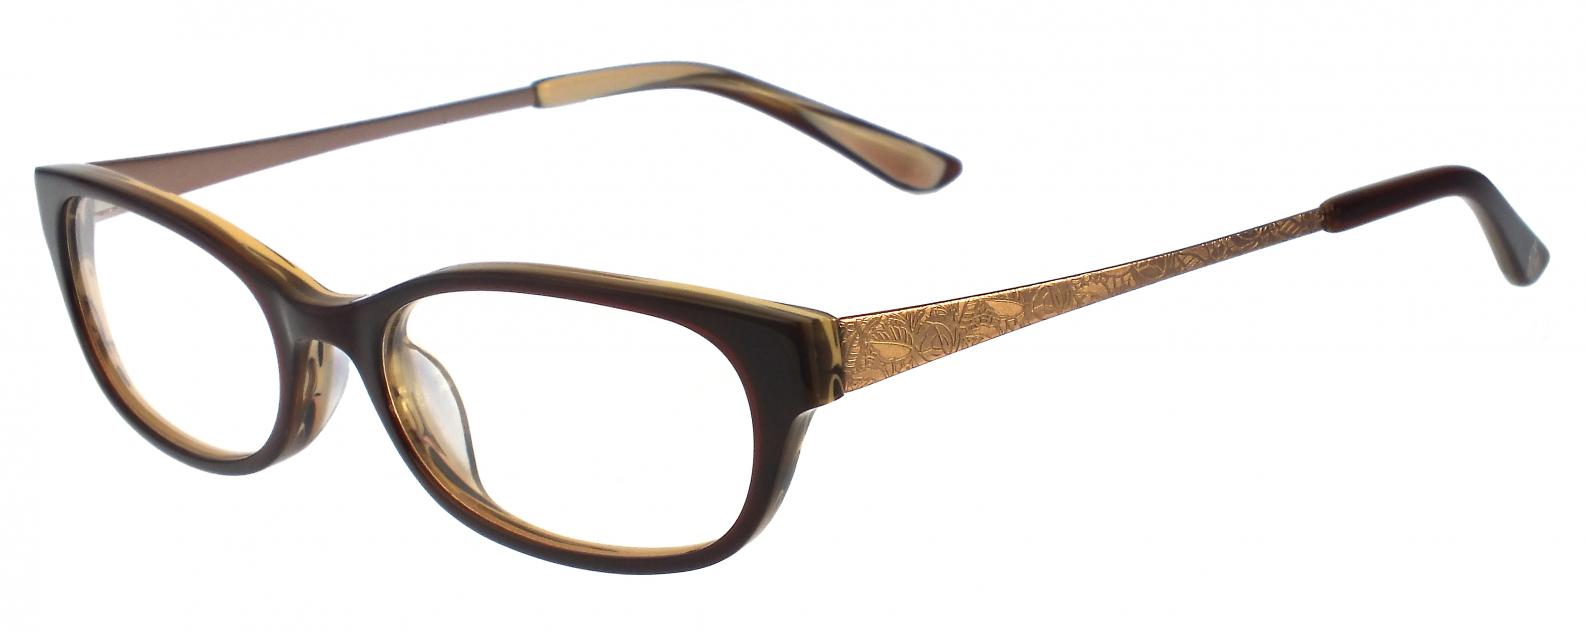 Anna Sui glasses   Authorised stockist   AS566 Brown - Framed Indulgence